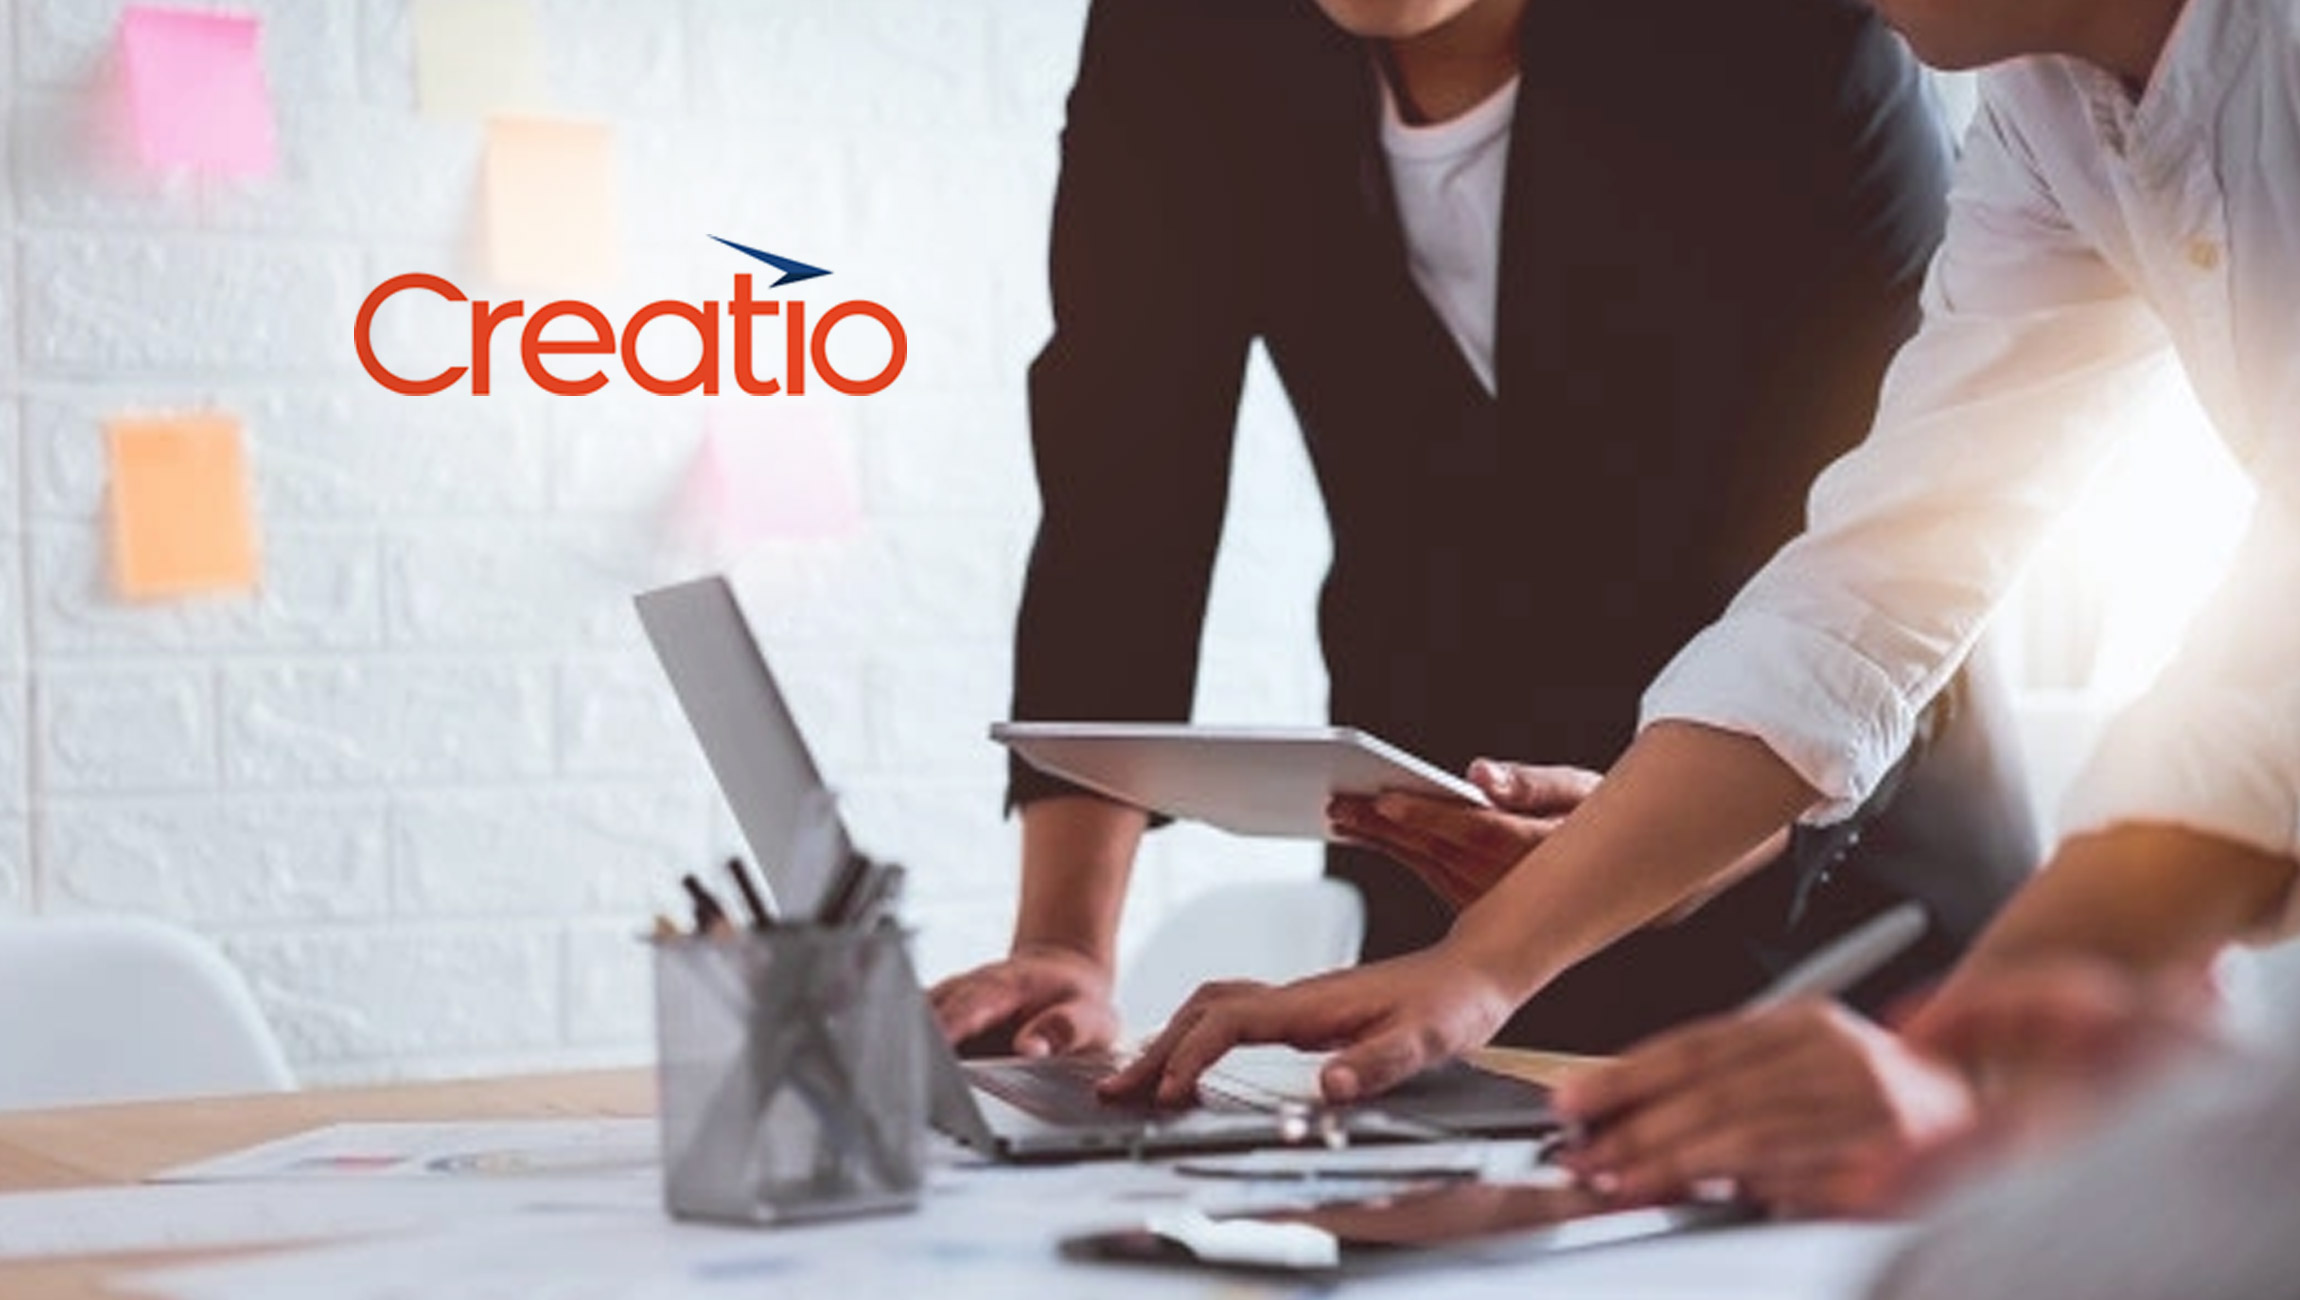 Volition-Capital-Deploys-Creatio-to-Streamline-Operational-and-CRM-Workflows-with-No-Code